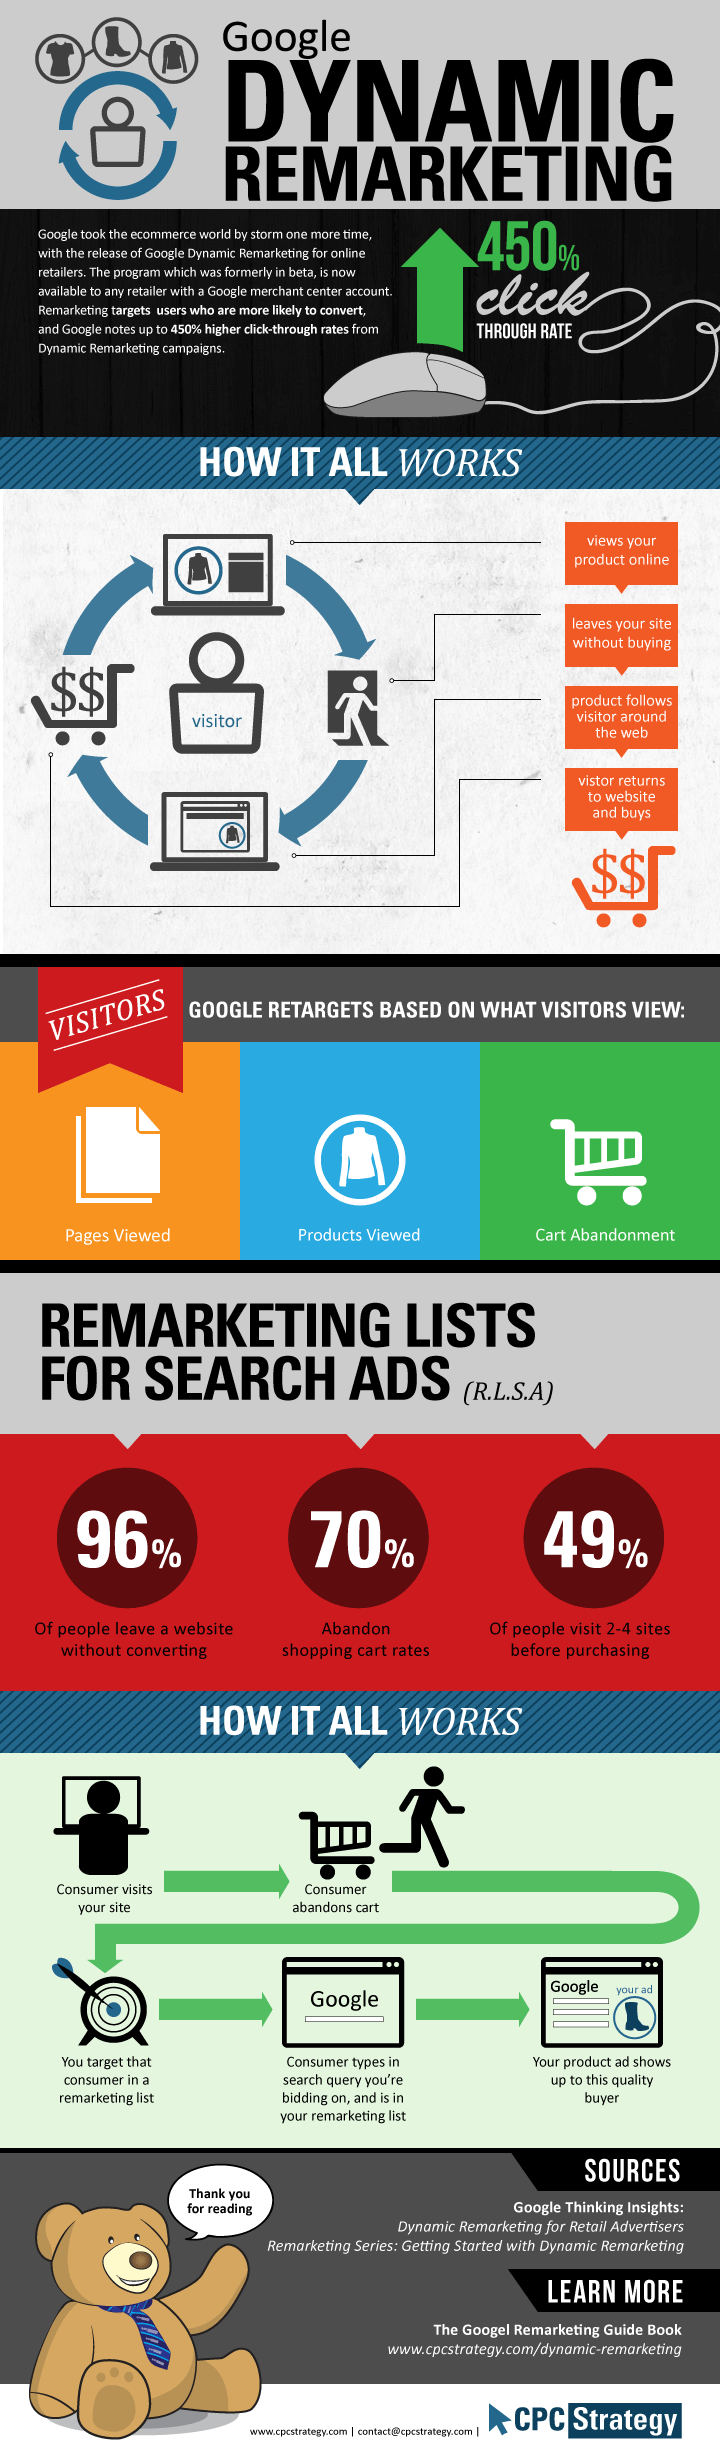 Google-Dynamic-Remarketing-Infographic